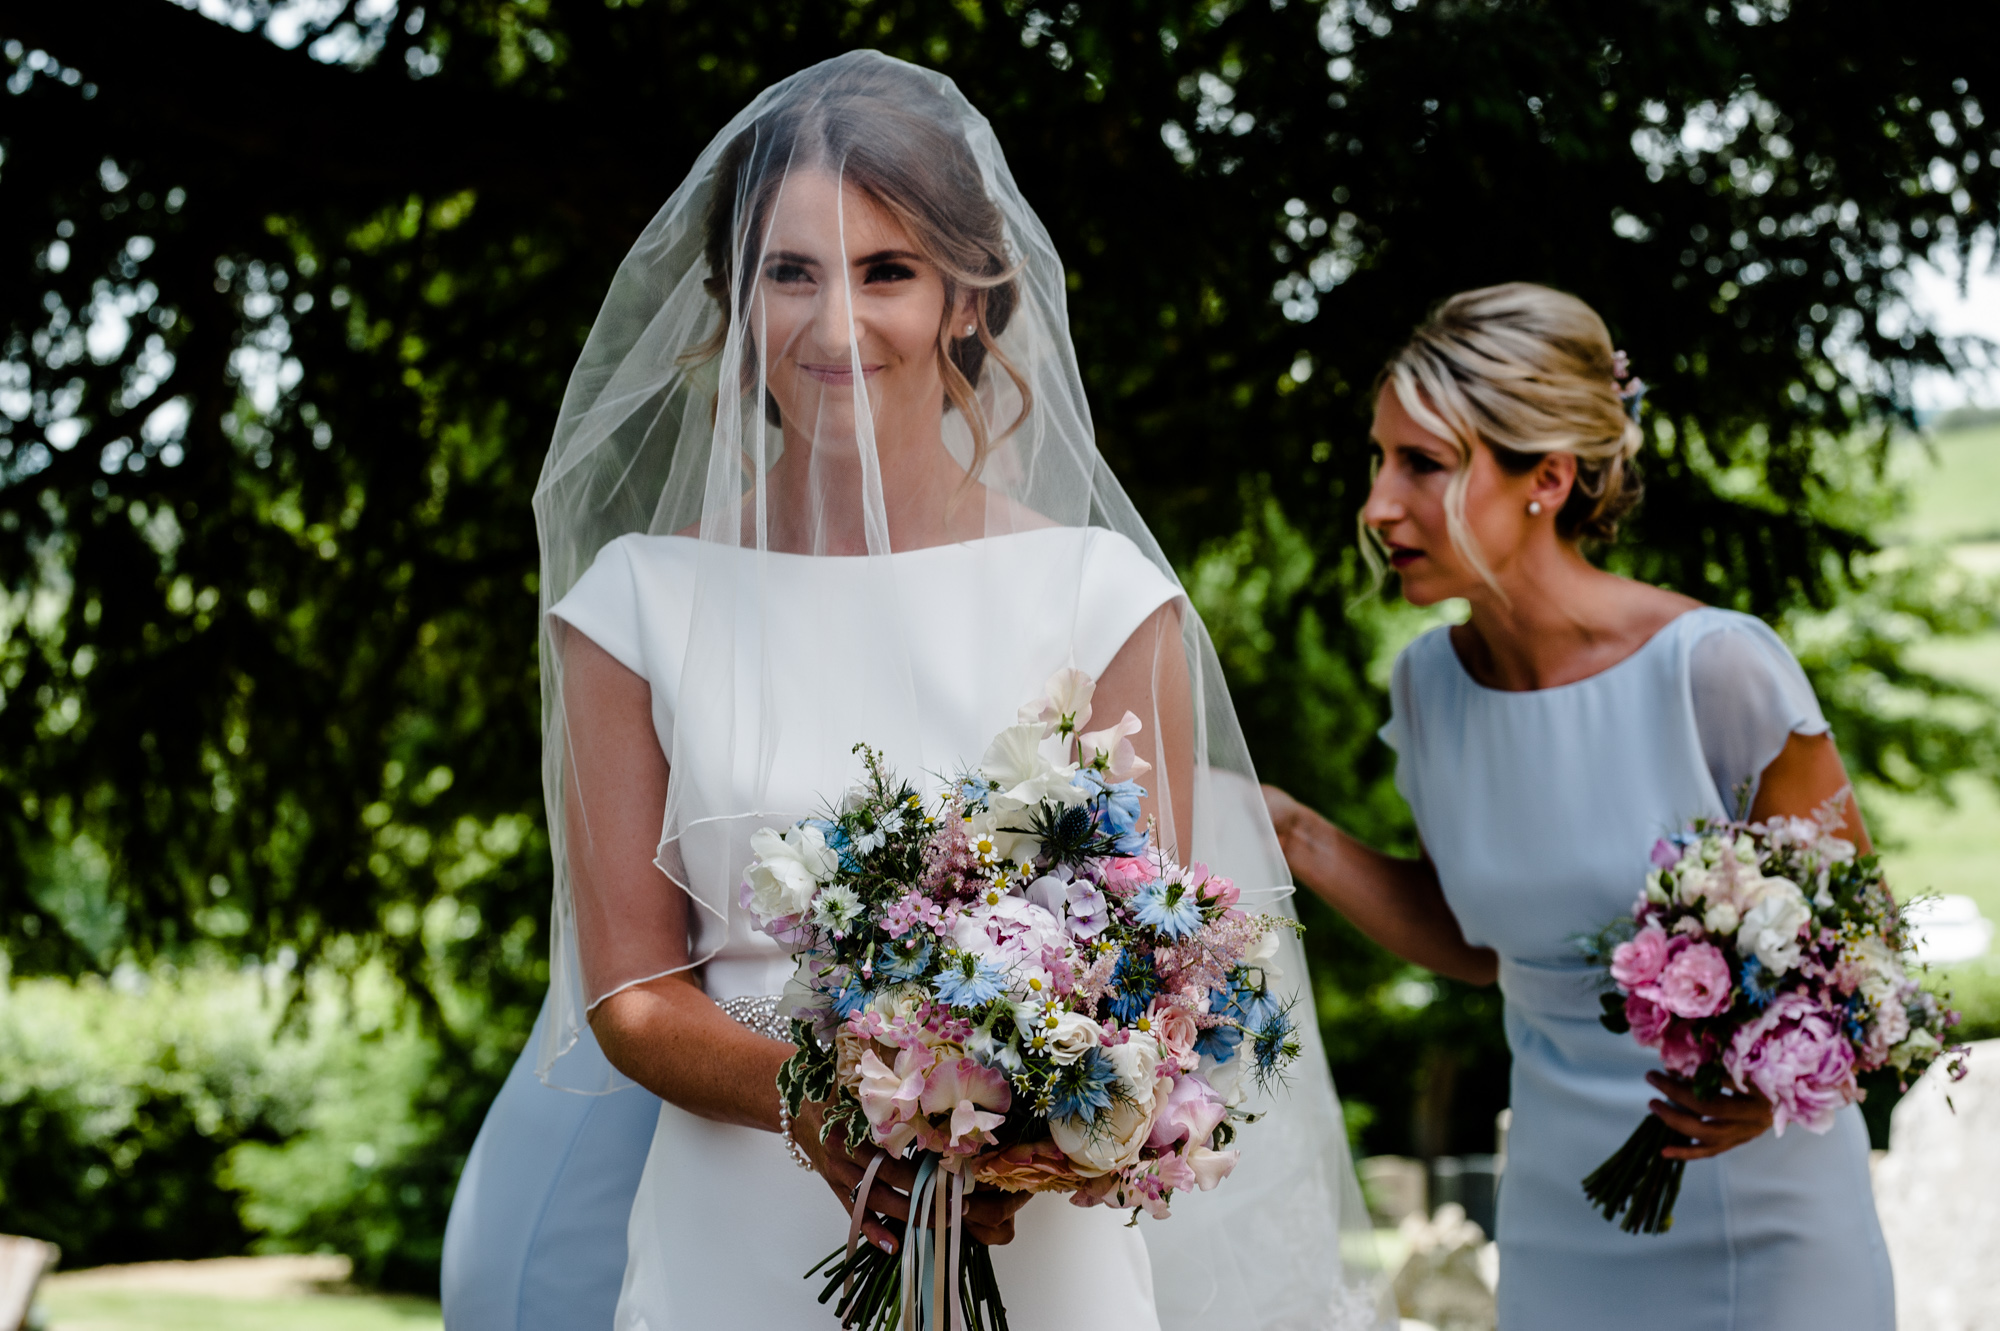 Cotswold Wedding Photography 11.09.1812.jpg